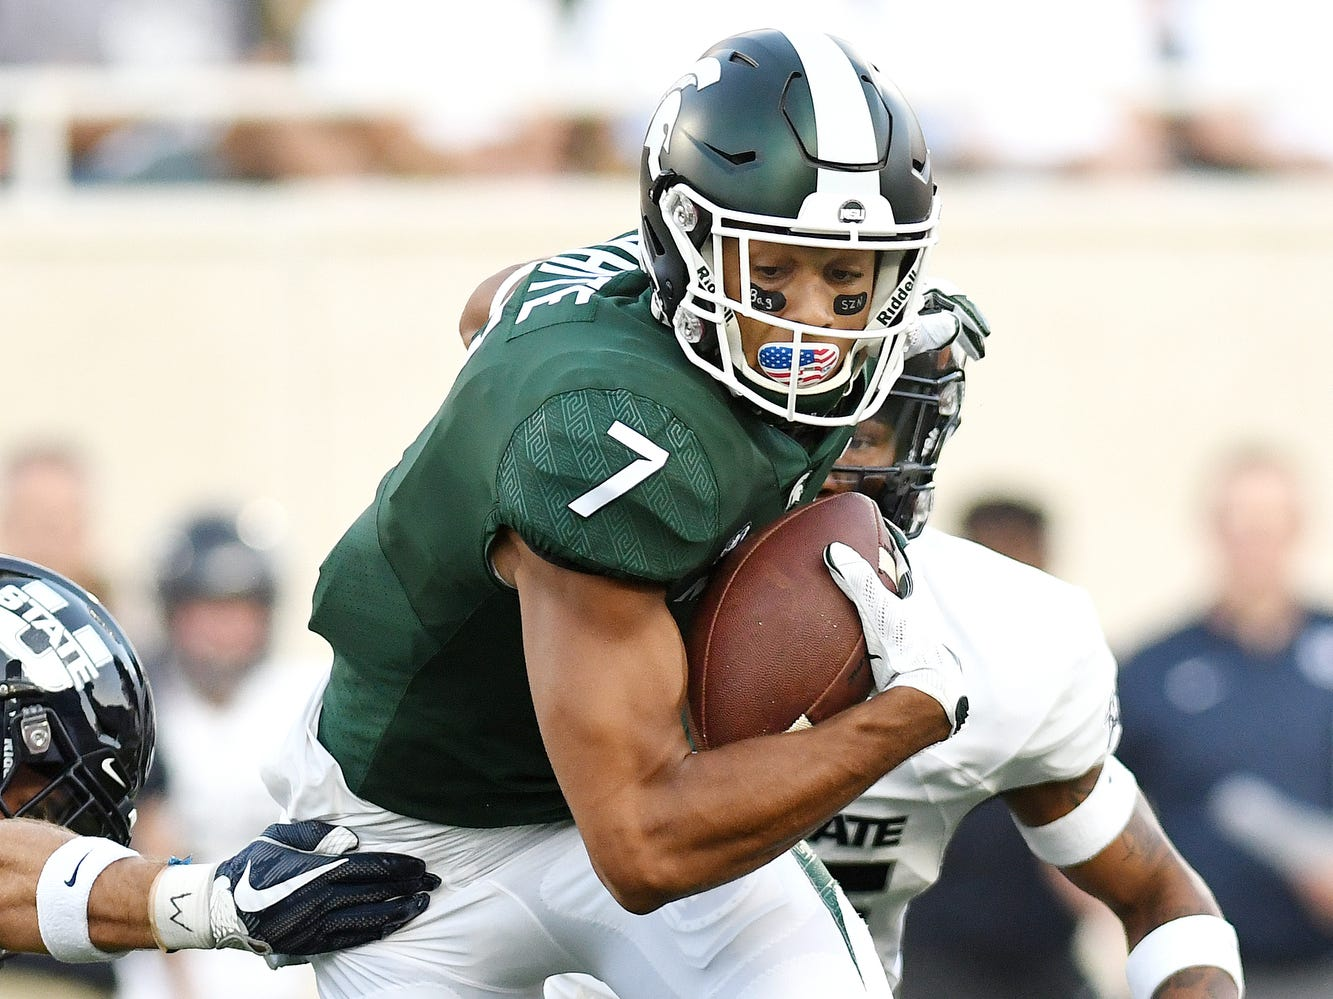 Michigan State's Cody White catches a pass during the first quarter on Friday, Aug. 31, 2018, at Spartan Stadium in East Lansing.